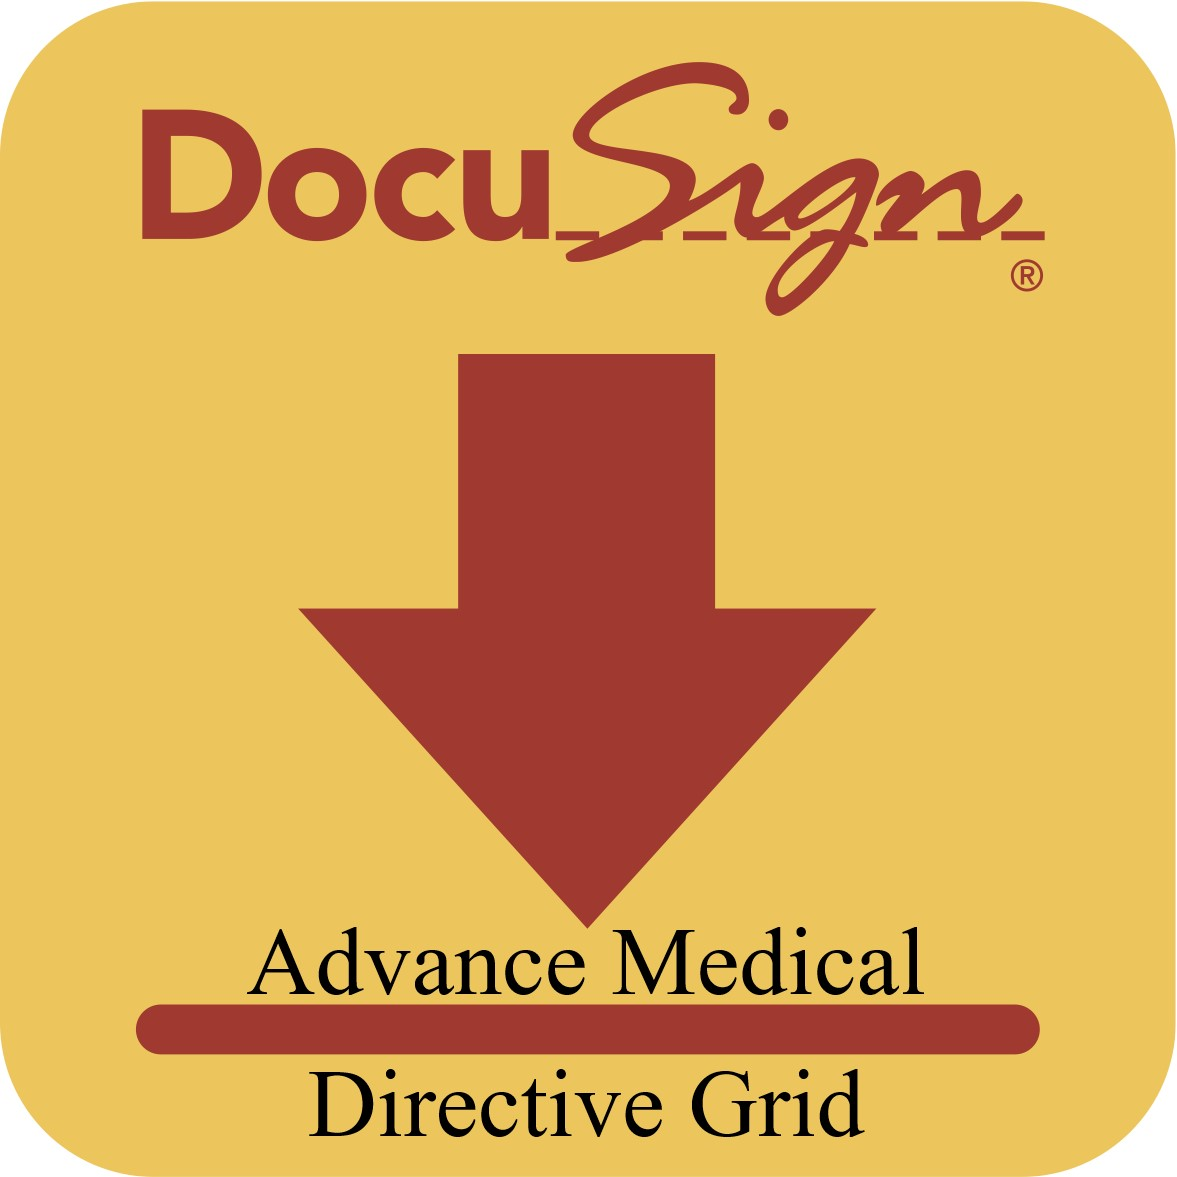 Advanced Medical Directive Grid